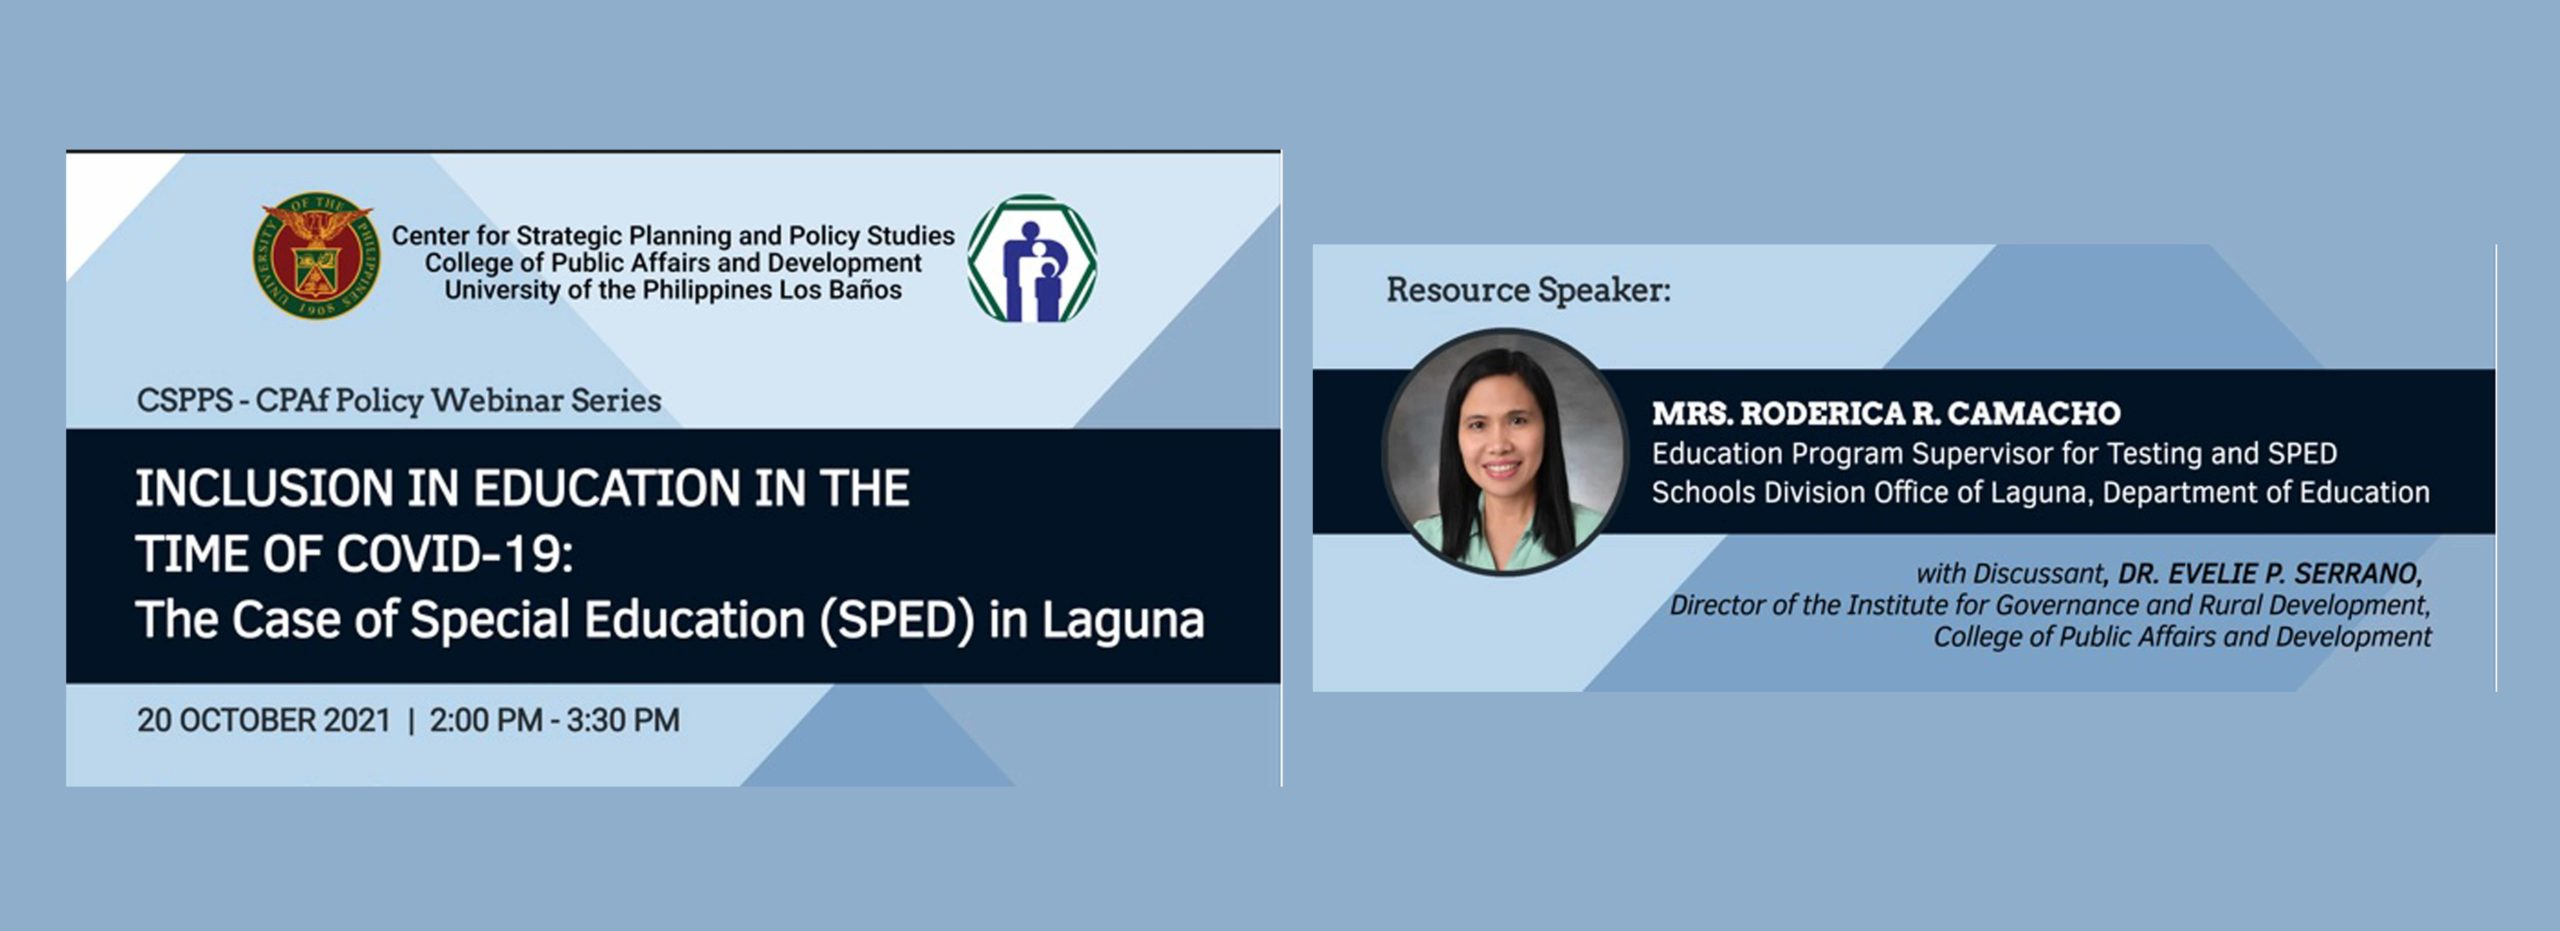 Inclusion in Education in the time of COVID-19: The case of Special Education (SPED) in Laguna